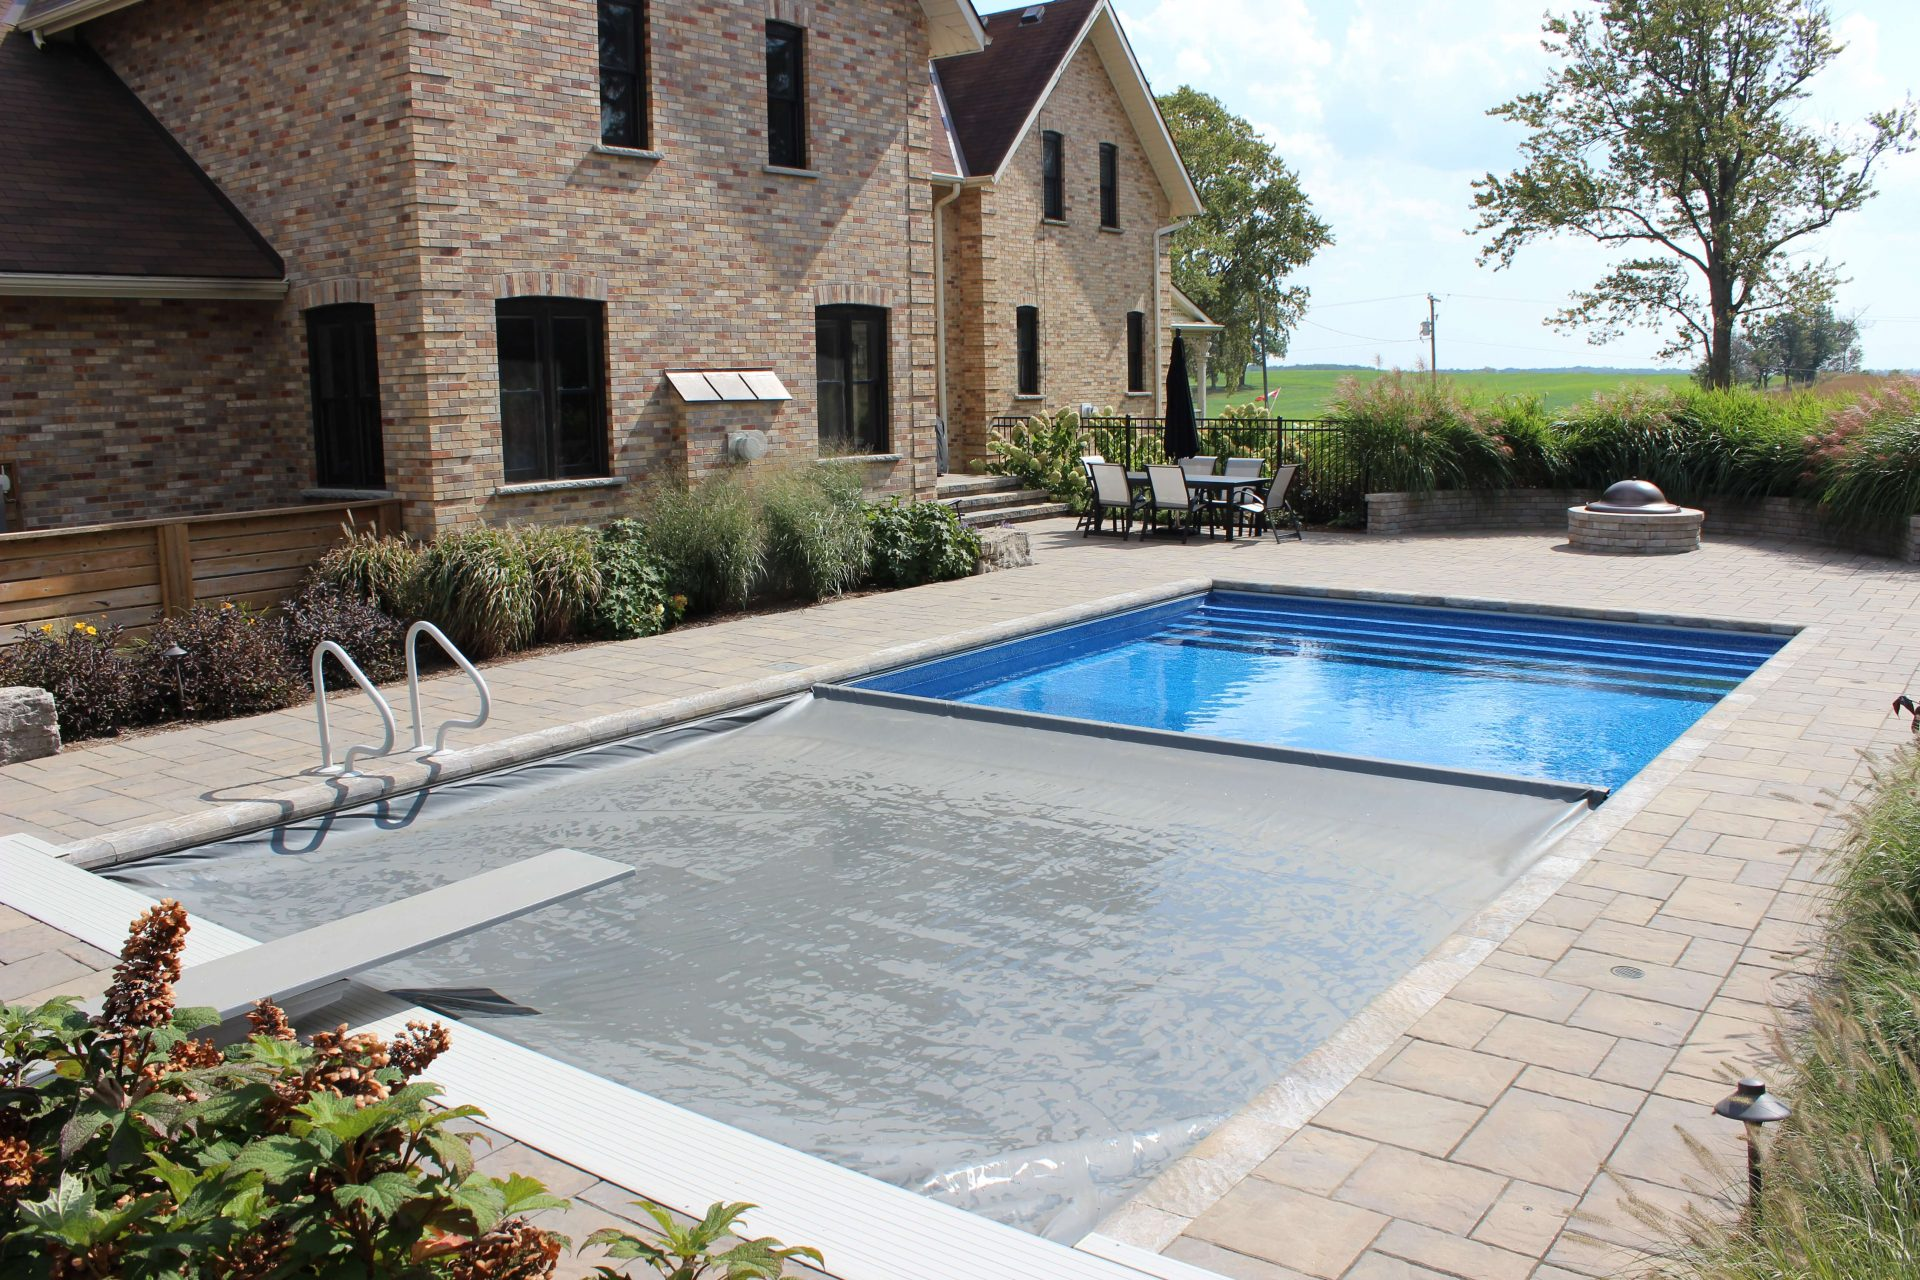 Underground pool featured in backyard of large home in the country